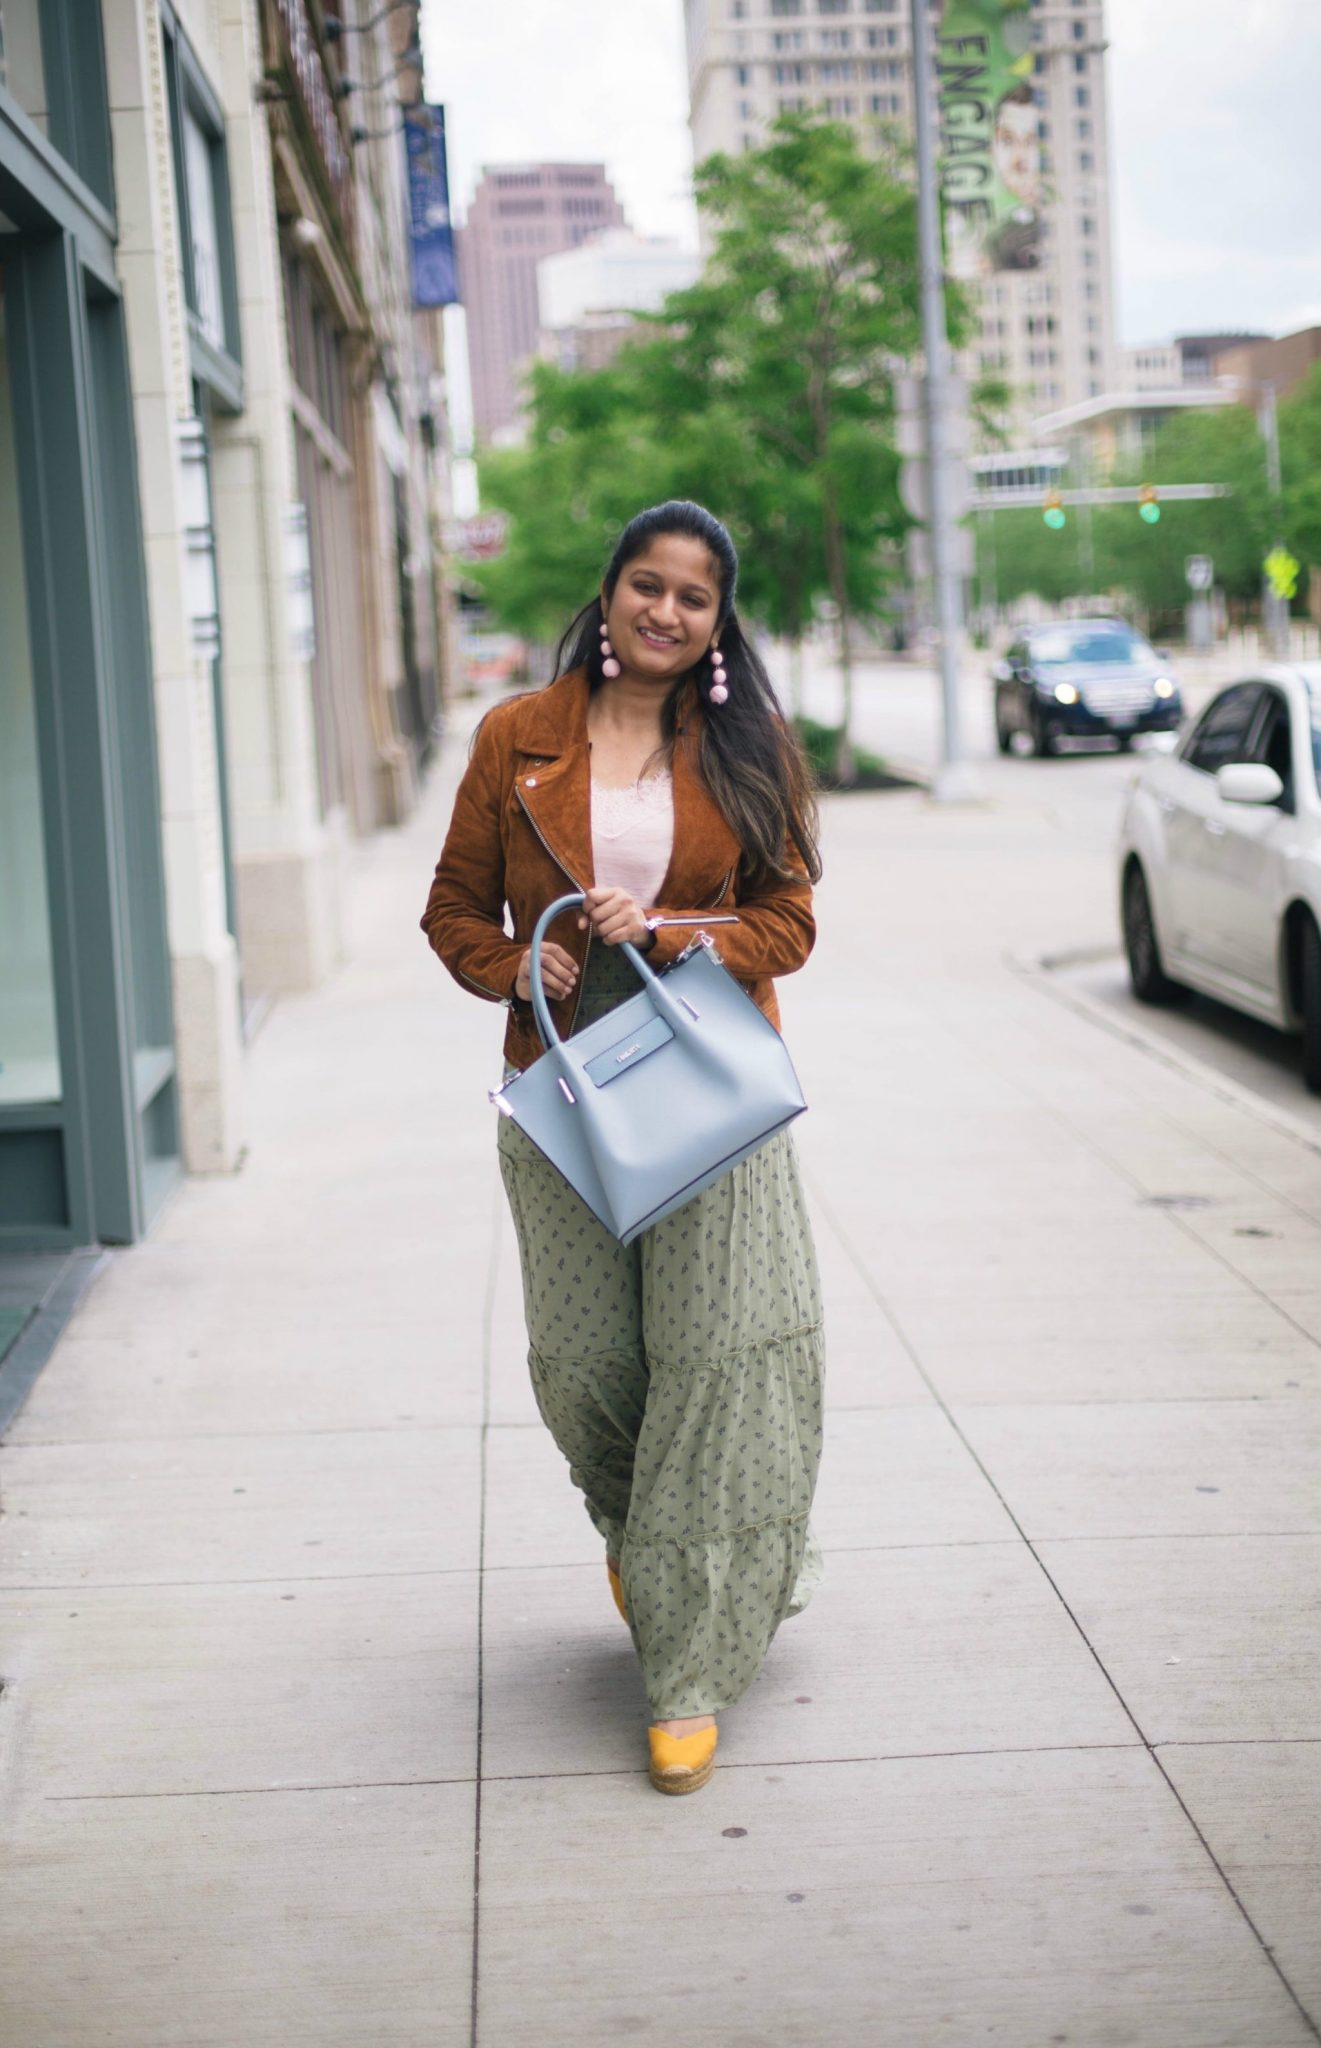 4-casual-chic-ways-to-wear-target-maxi-skirt - Maxi Skirts For Petites featured by popular Ohio modest fashion blogger, Dreaming Loud